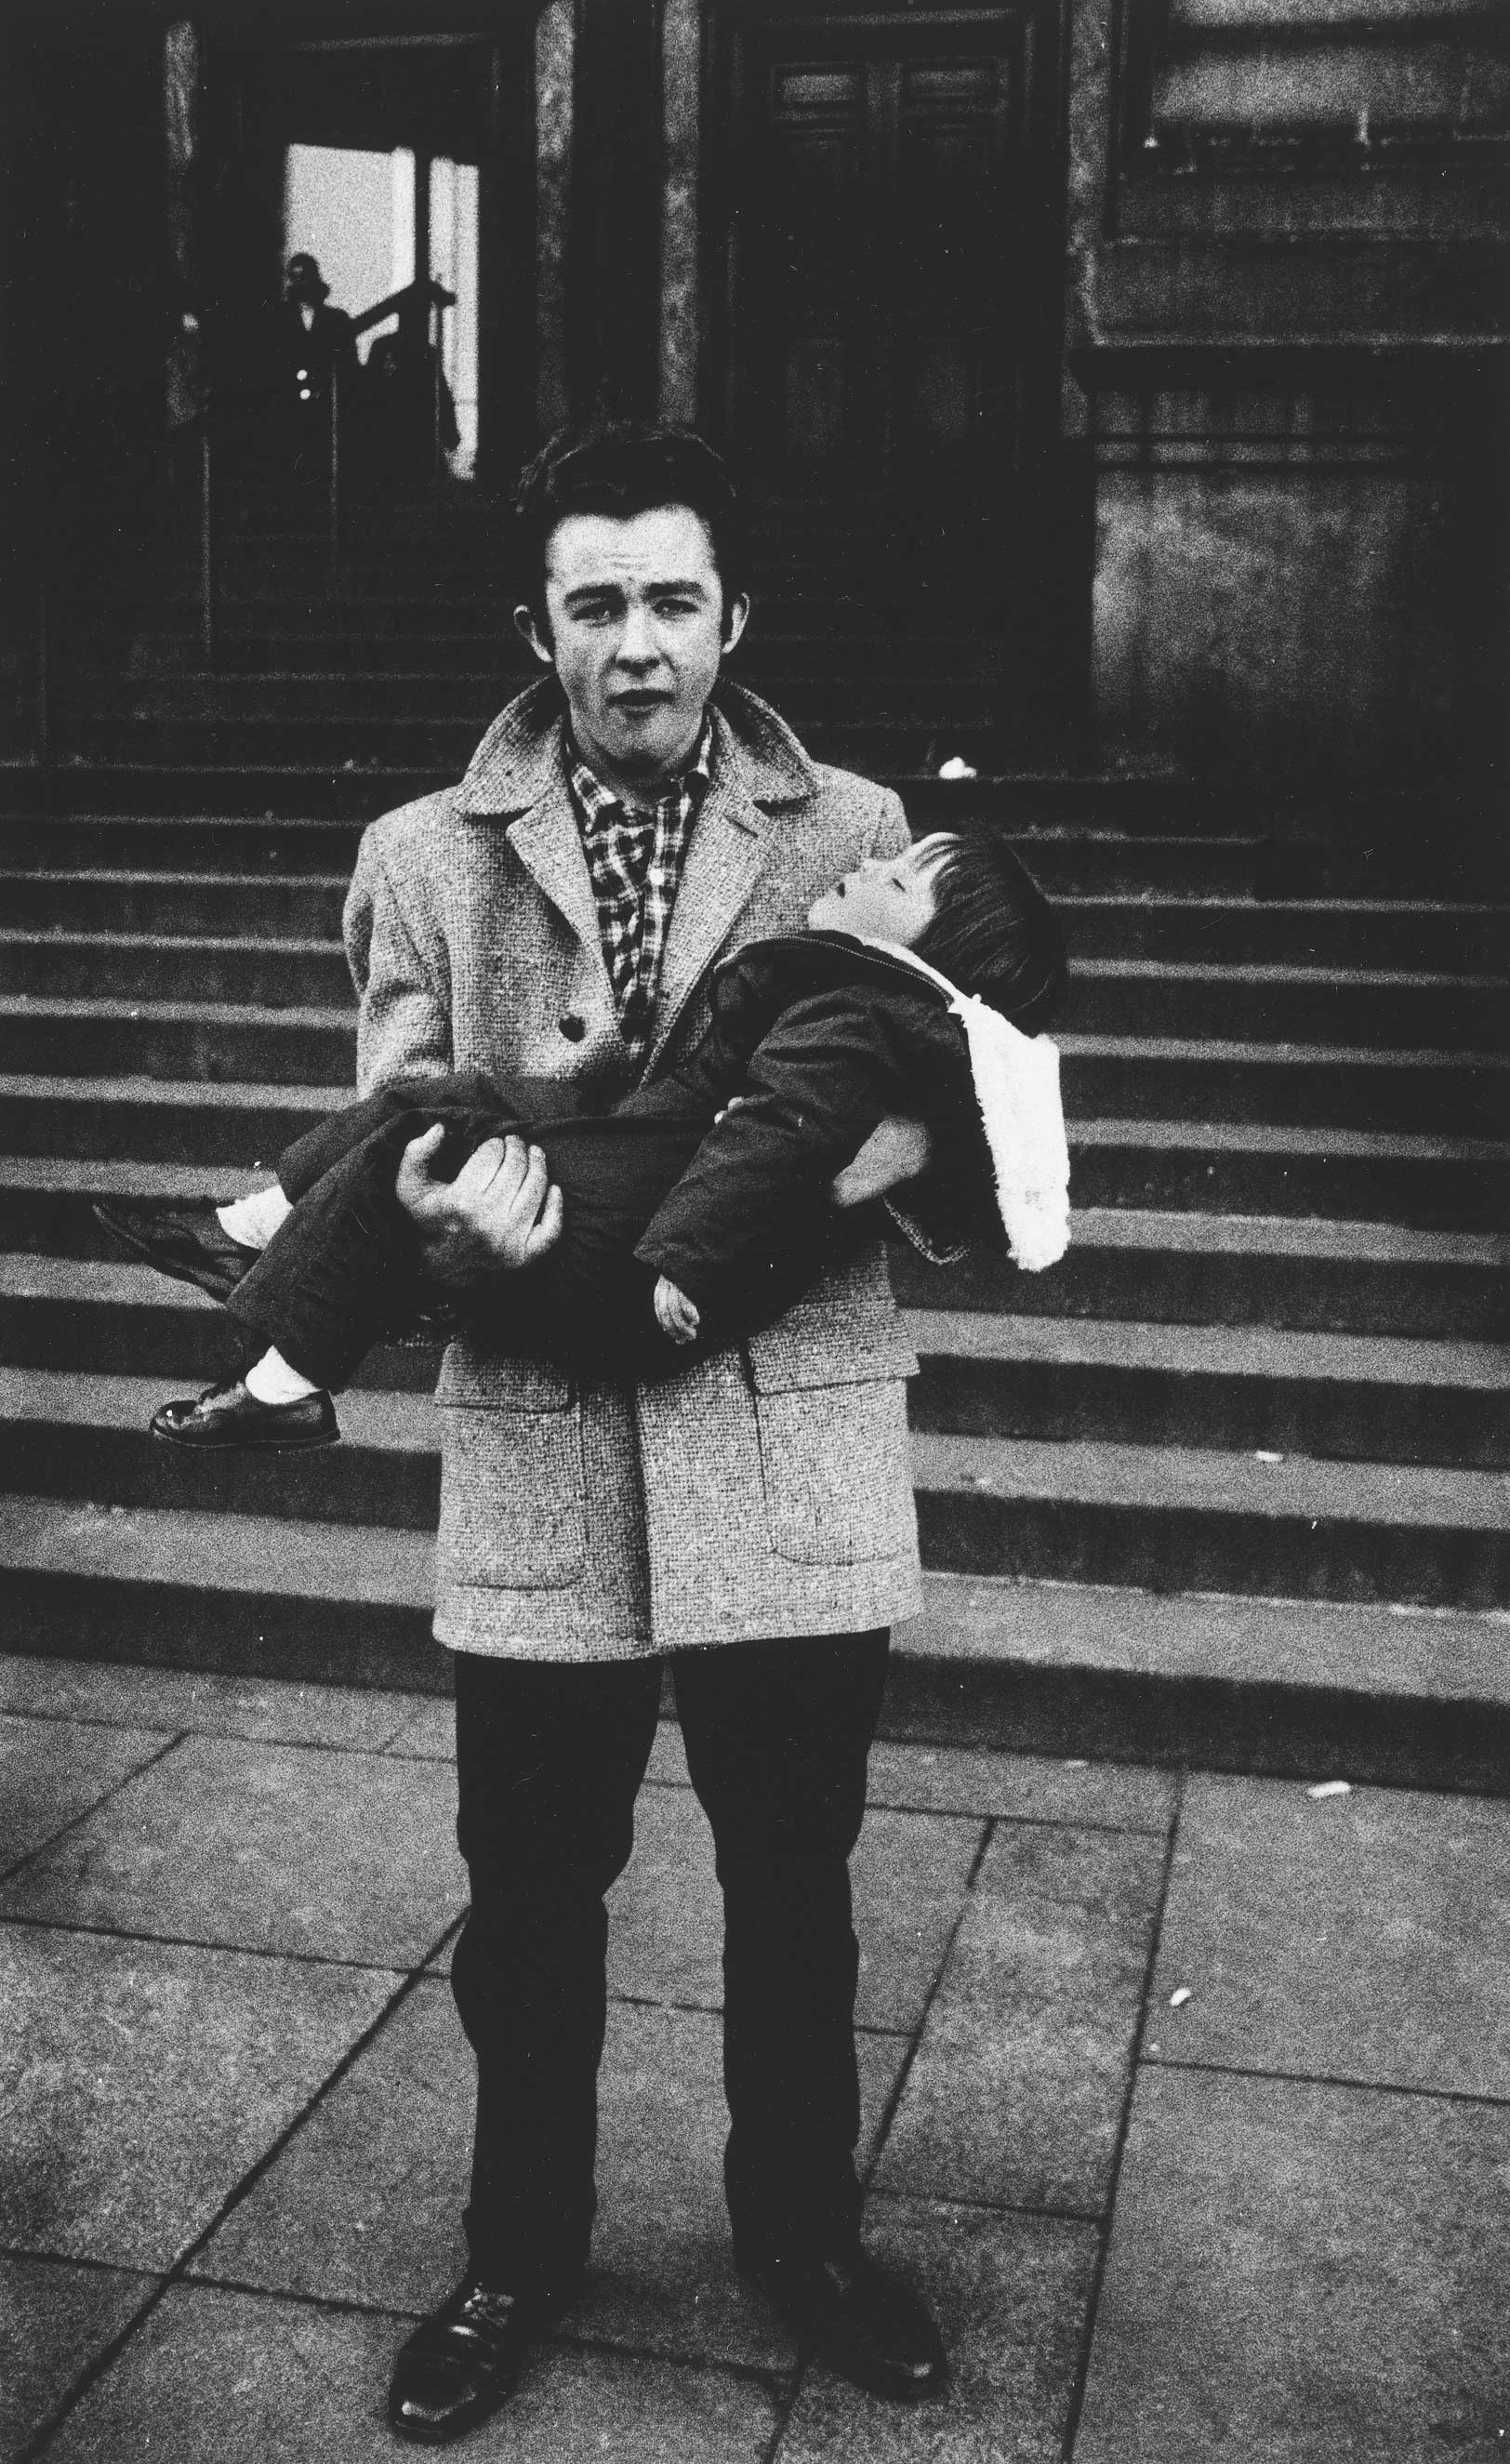 Man holding a sleeping child, N.Y.C, 1957                               Yola Monakhov Stockton: Arbus' biography as mother and photographer of the complex theater of human affections comes to mind when looking at her photographs depicting men (instead of fathers) holding their children. This scenario could be an obverse self-portrait – a child in place of camera, the father addressing the camera's gaze. Behind the figures, granite steps leading toward (instead of to) heavy doorways suggest a public building and institutional rites of passage. The father's emotive face, turned-up collar, shiny shoes and raffish coiffure channel James Dean, but here his hands strain to hold a sleeping boy who is wearing the same proper shoes in miniature. A new Madonna and child, of fatherhood and aspiration on a New York City street, is recognized as uncertain ceremony, a weight to feel.